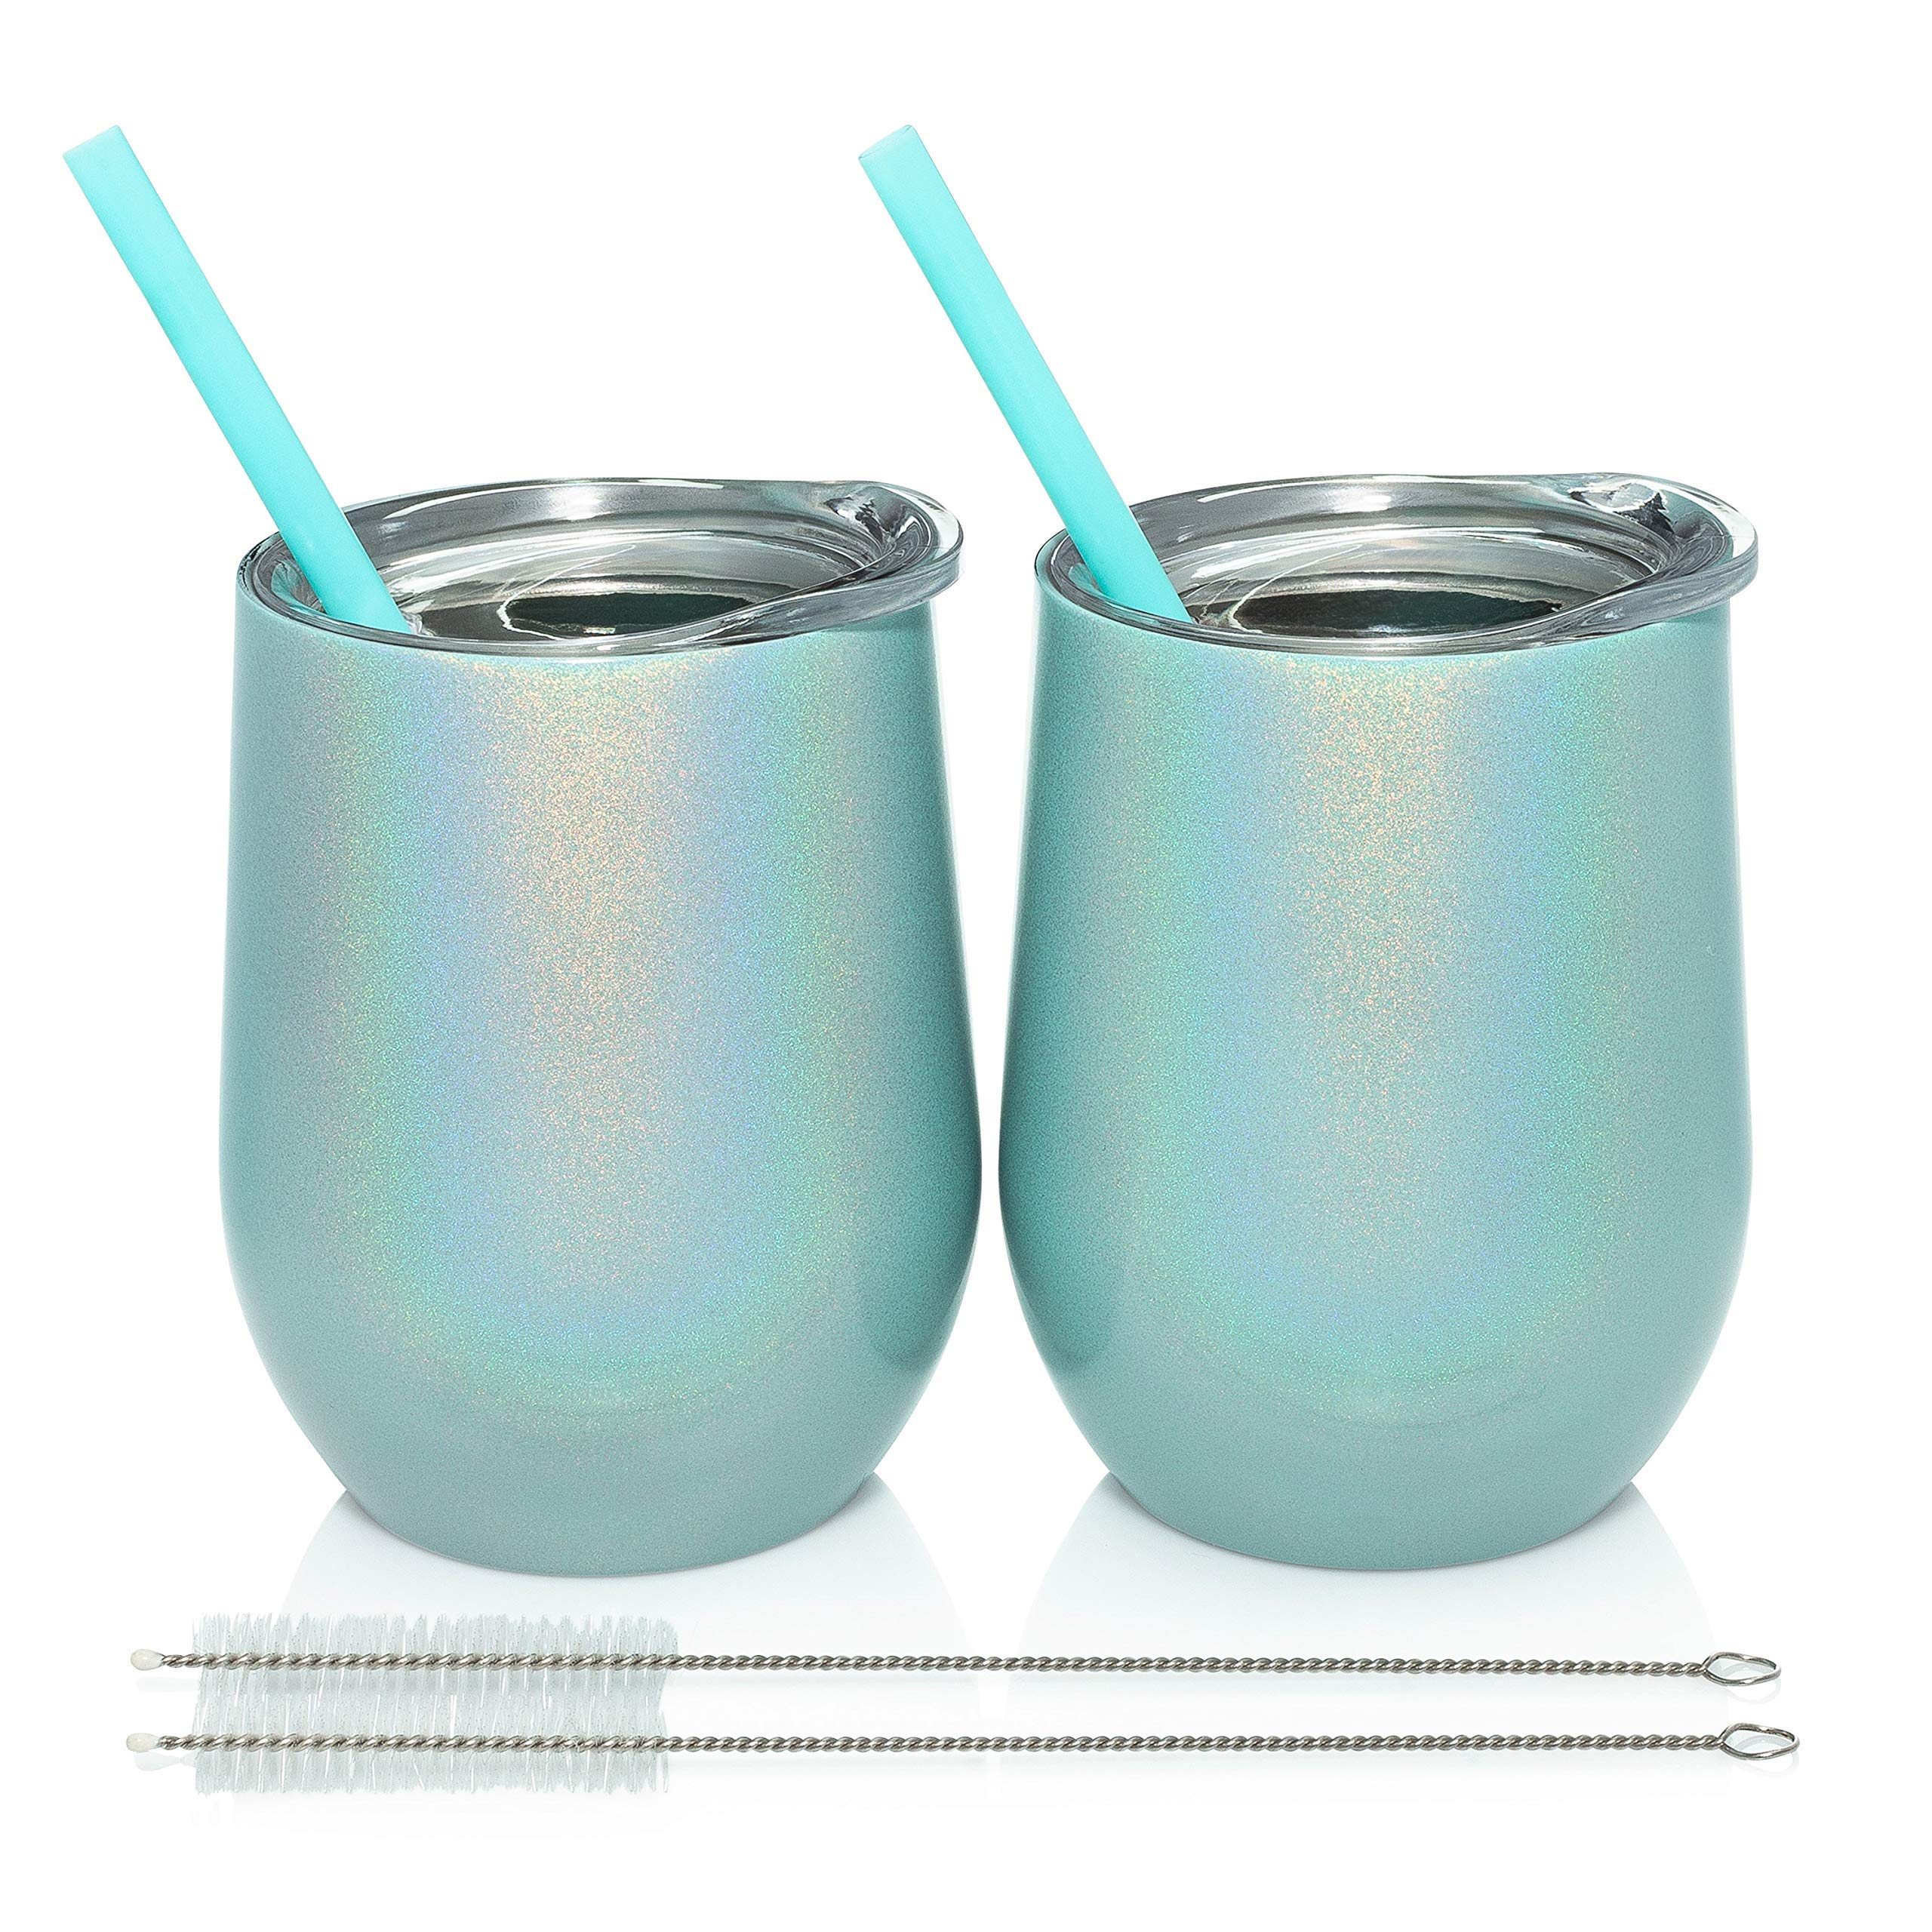 Trugos 12 oz Sparkly Stemless Wine Tumbler (Set of 2) Stainless Steel Double Wall Vacuum Insulated Cups With BPA Free Lid, Straw, and Cleaning Brush Great Travel Glasses For Wine, Coffee, Cocktails